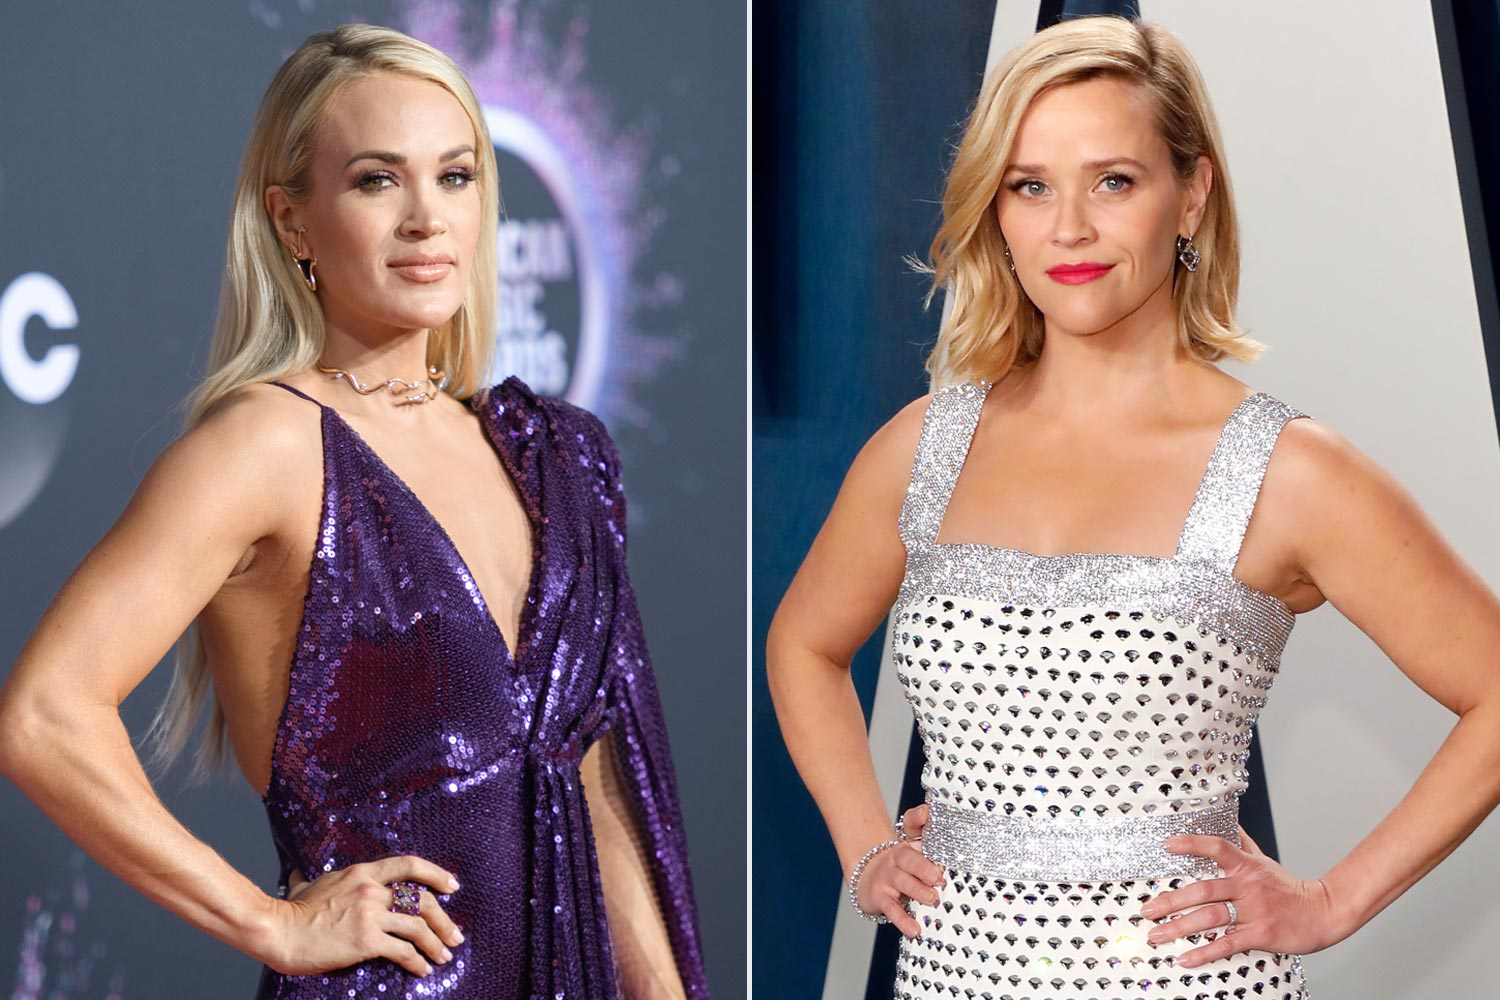 Carrie Underwood, Reese Witherspoon